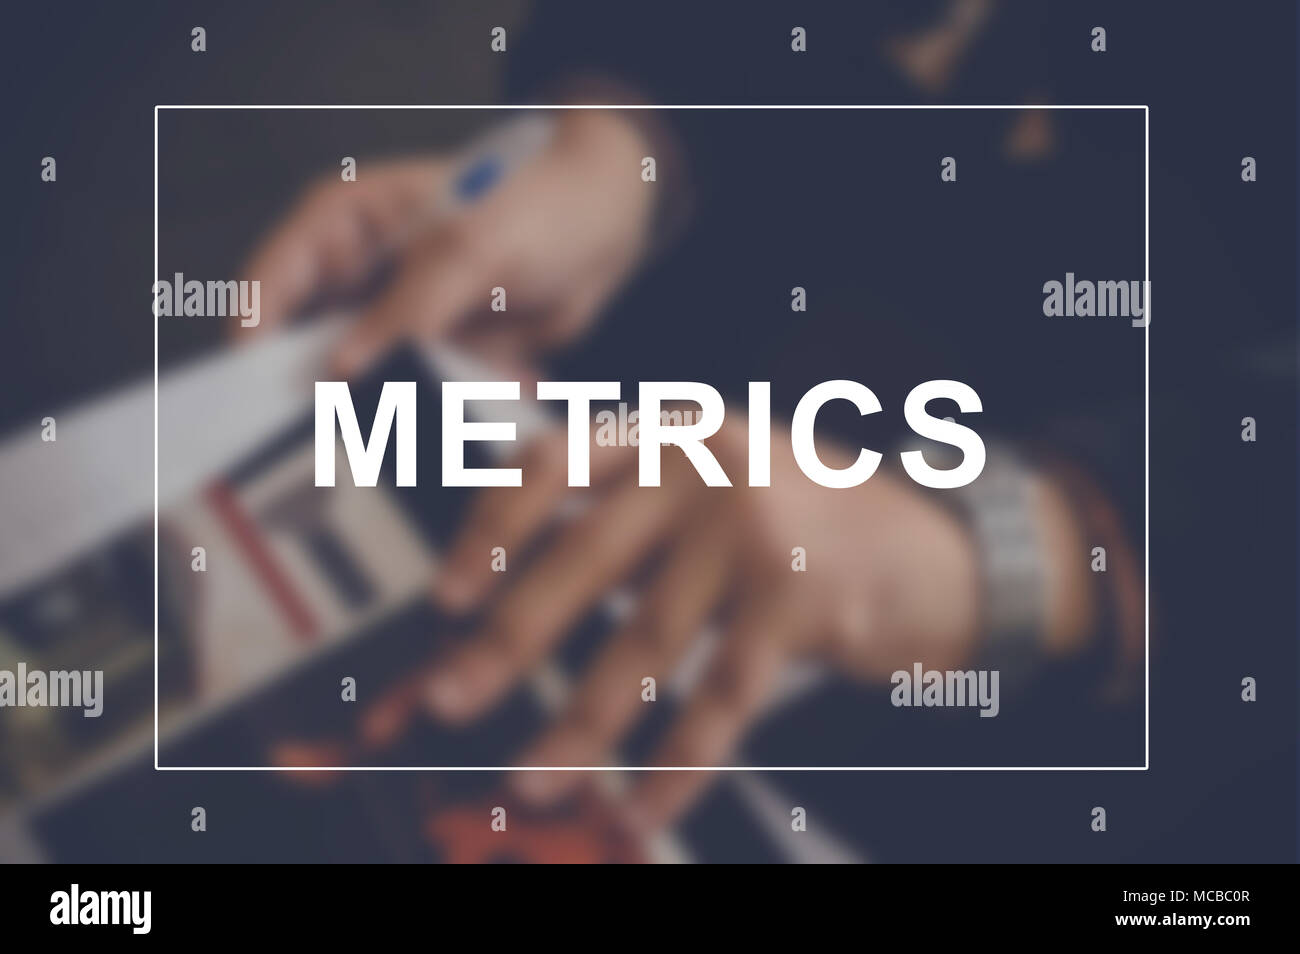 Metrics word with business blurring background - Stock Image